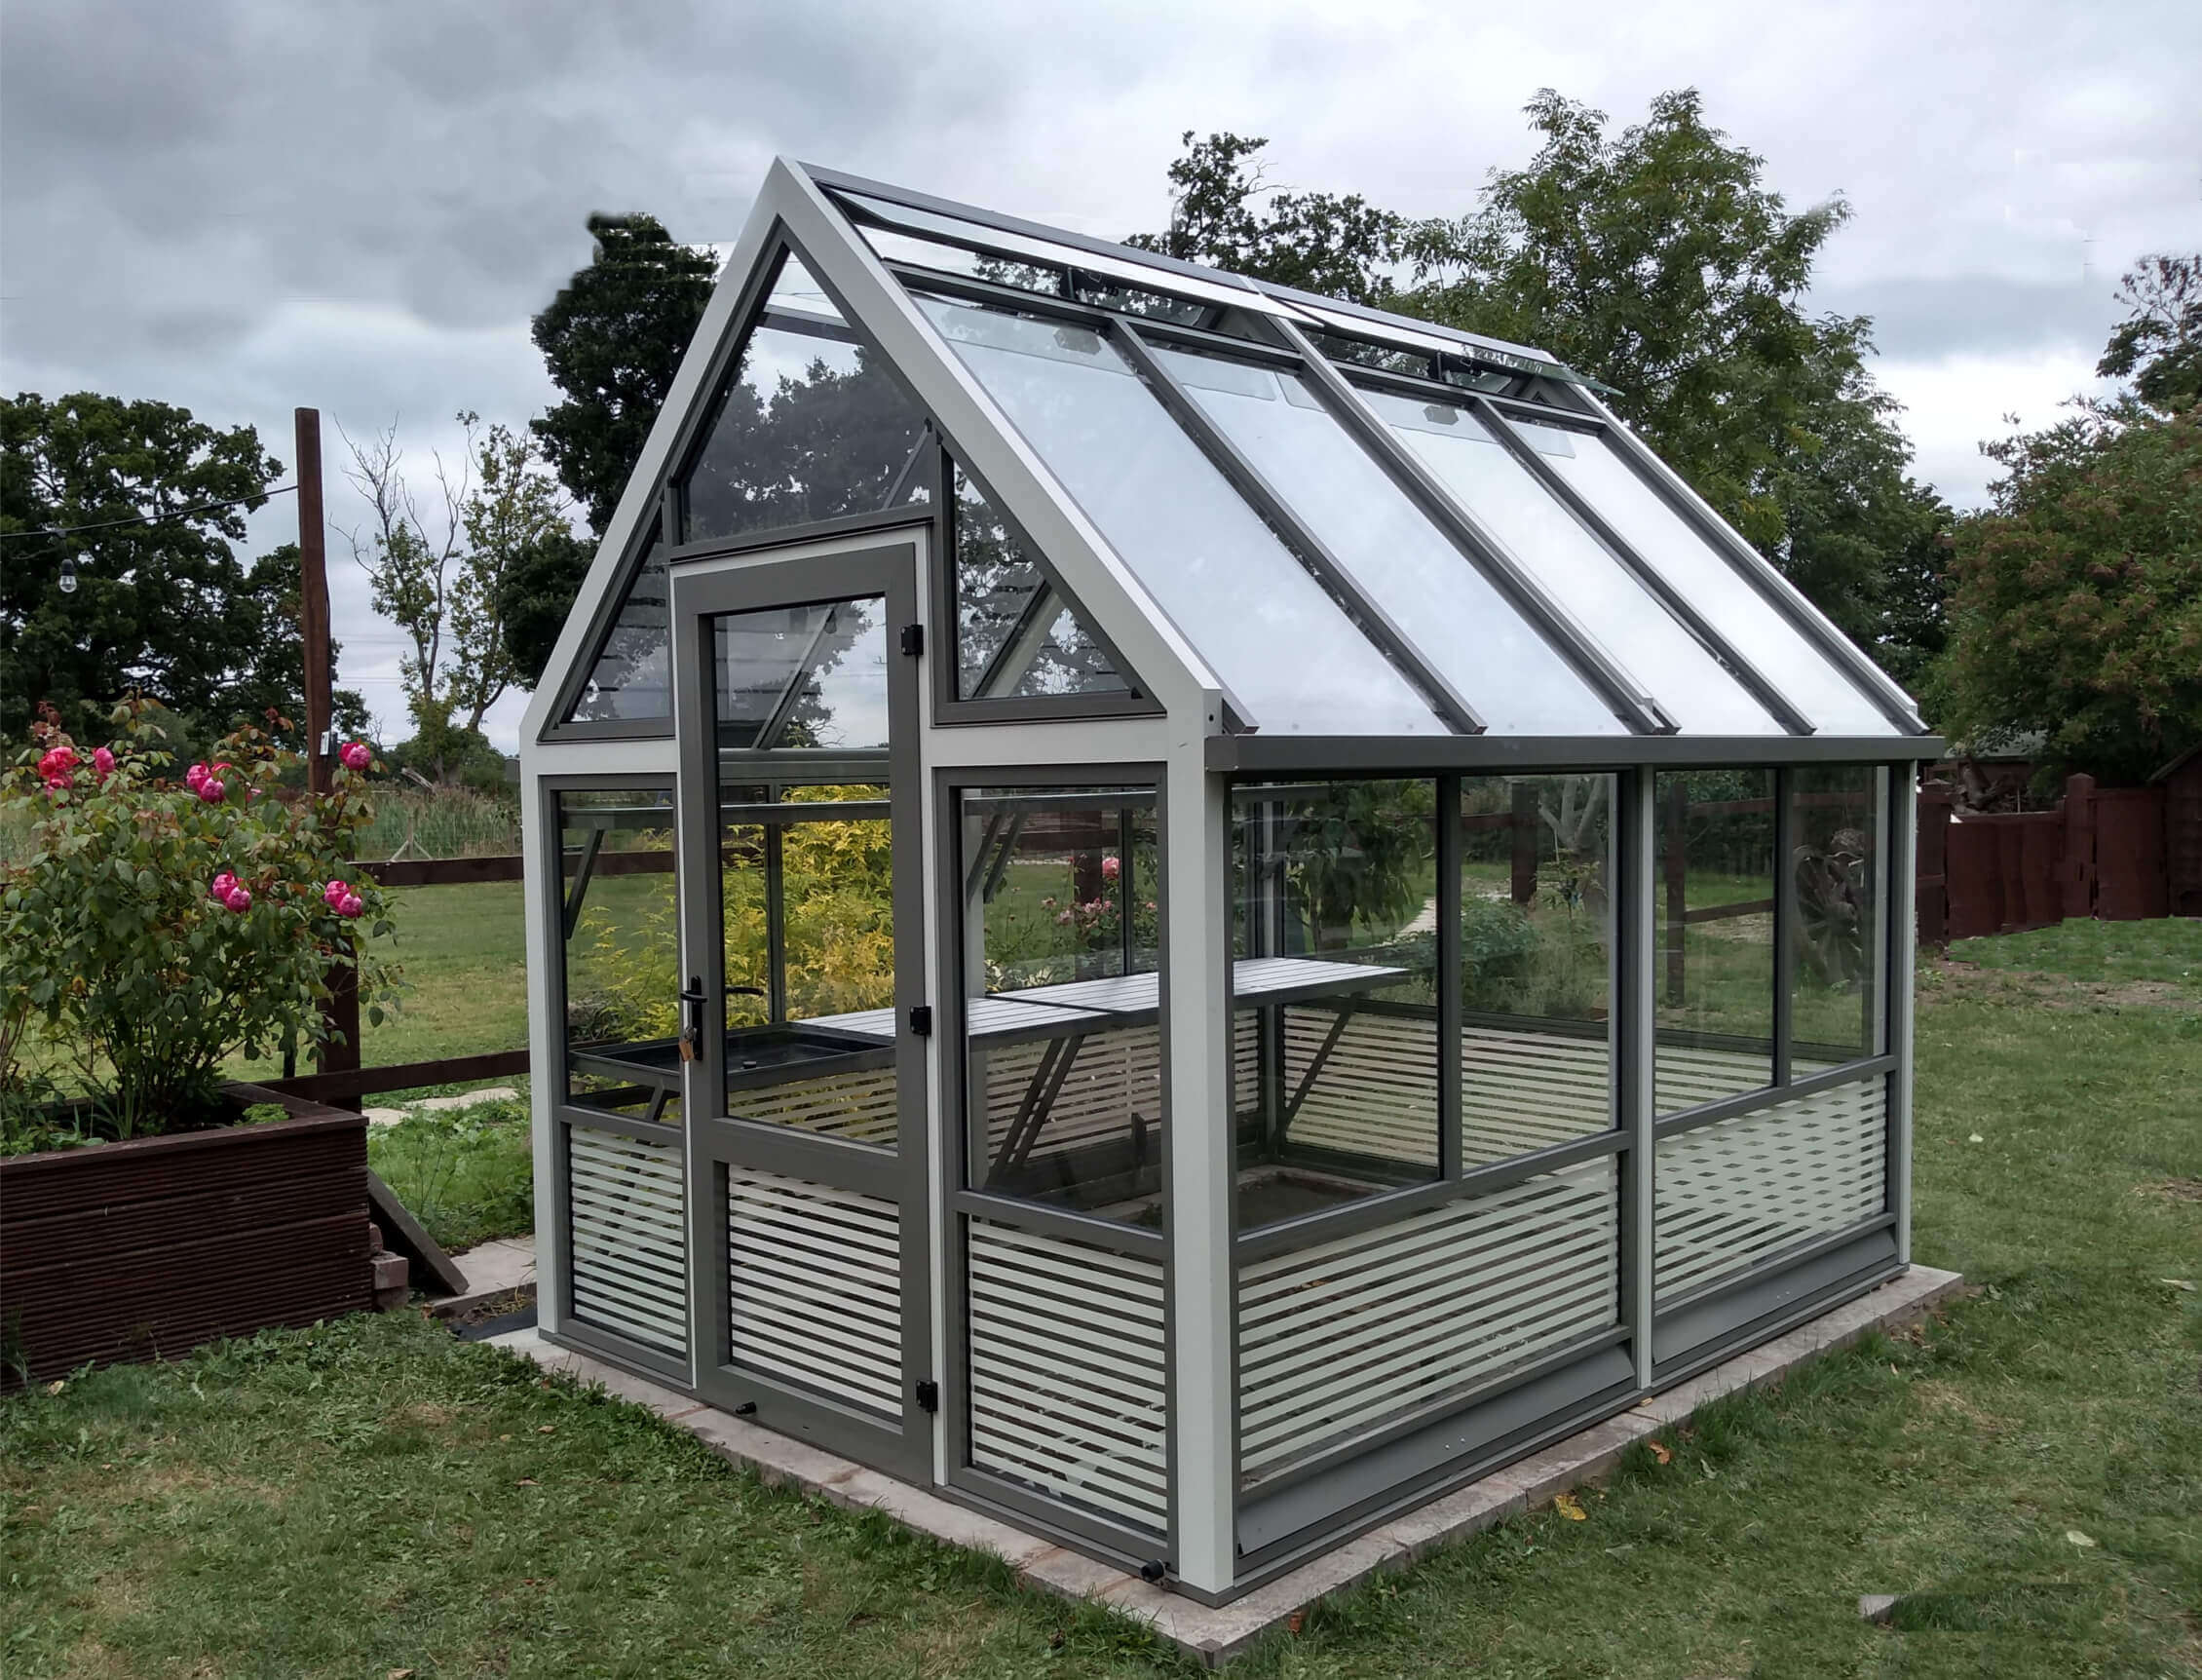 Aluminium Greenhouse with Striped Base